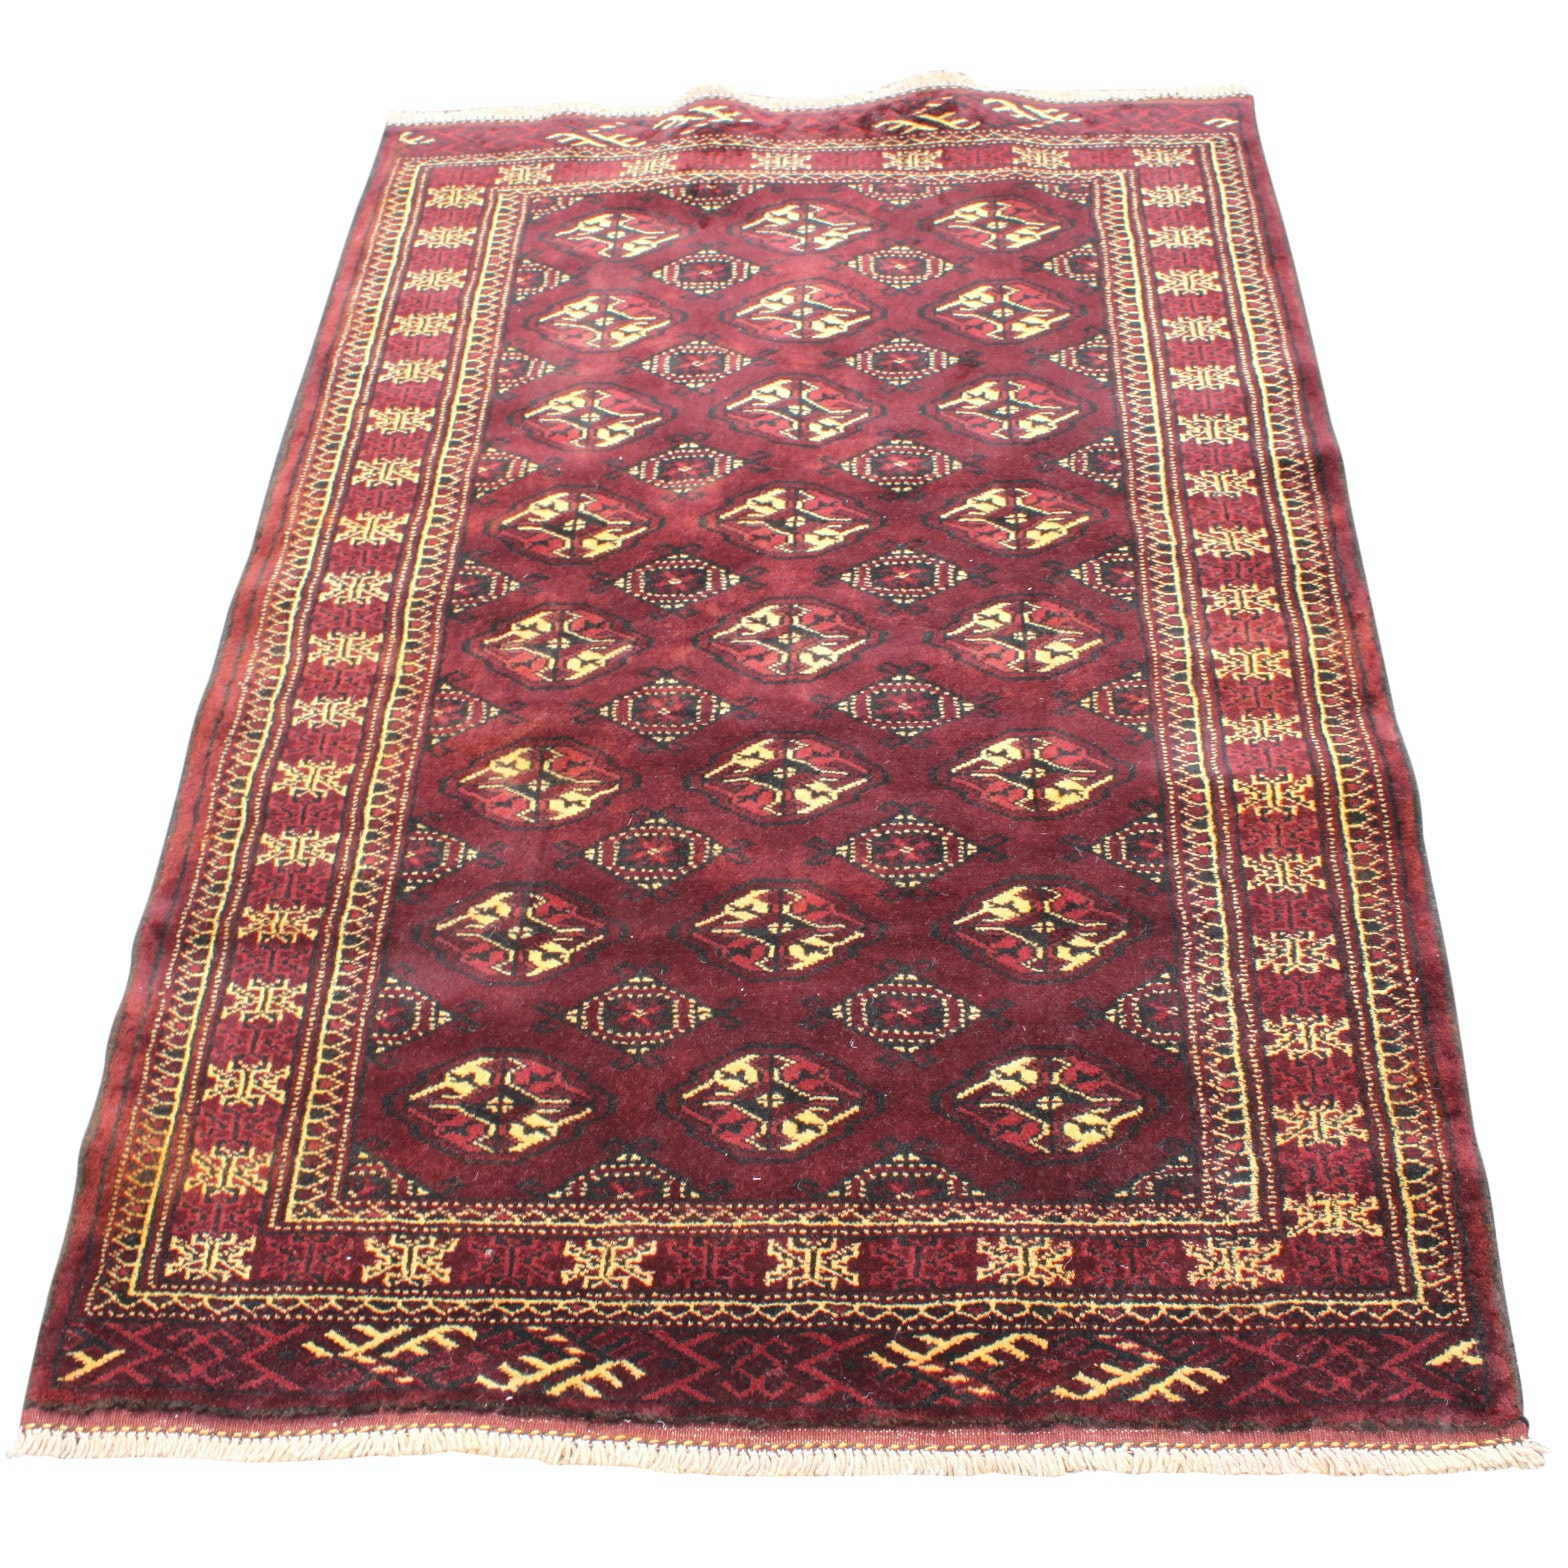 Hand-Knotted Persian Turkmen Wool Area Rug